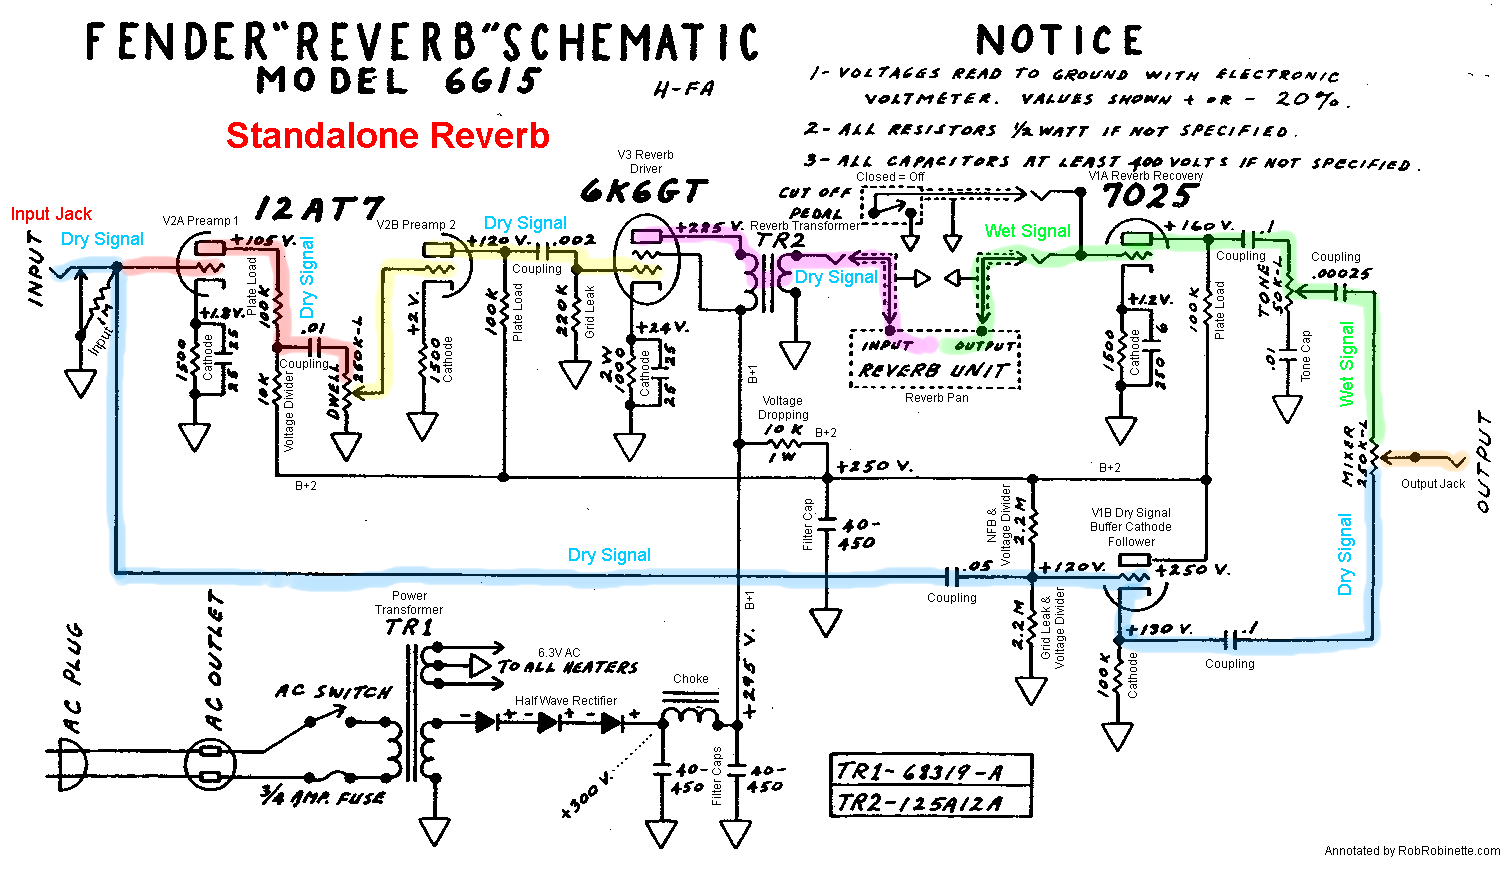 fender 6g15 tube reverb unit schematic with signal flow by robrobinette com [ 1512 x 870 Pixel ]